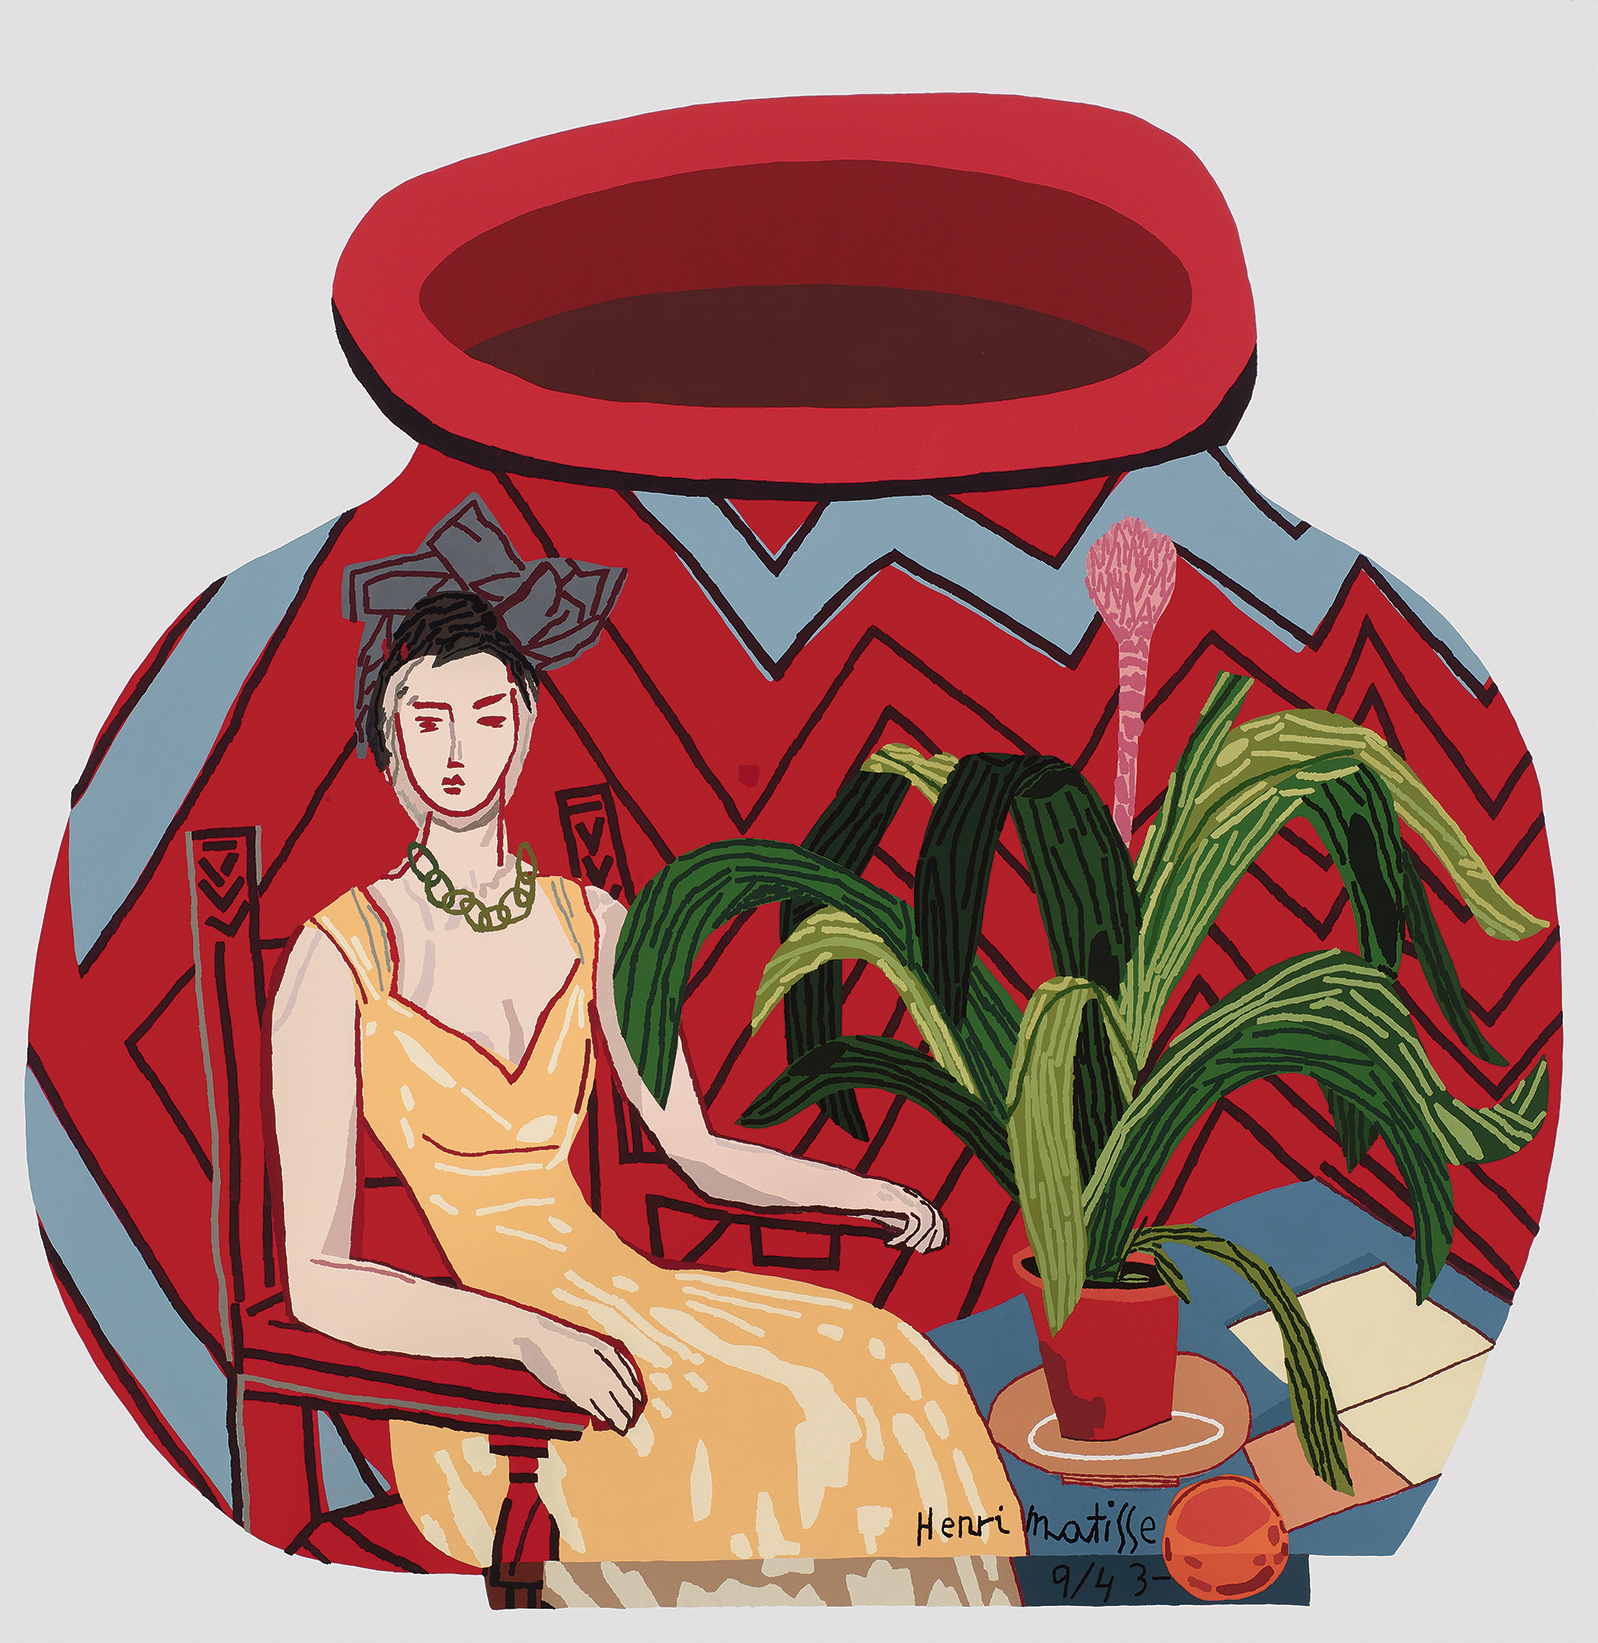 JONAS WOOD  Red Portrait Pot,  2015 Oil and acrylic on canvas 76 x 74 in 193 x 188 cm  © Jonas Wood. Photo: Brian Forrest. Courtesy the artist and Gagosian.